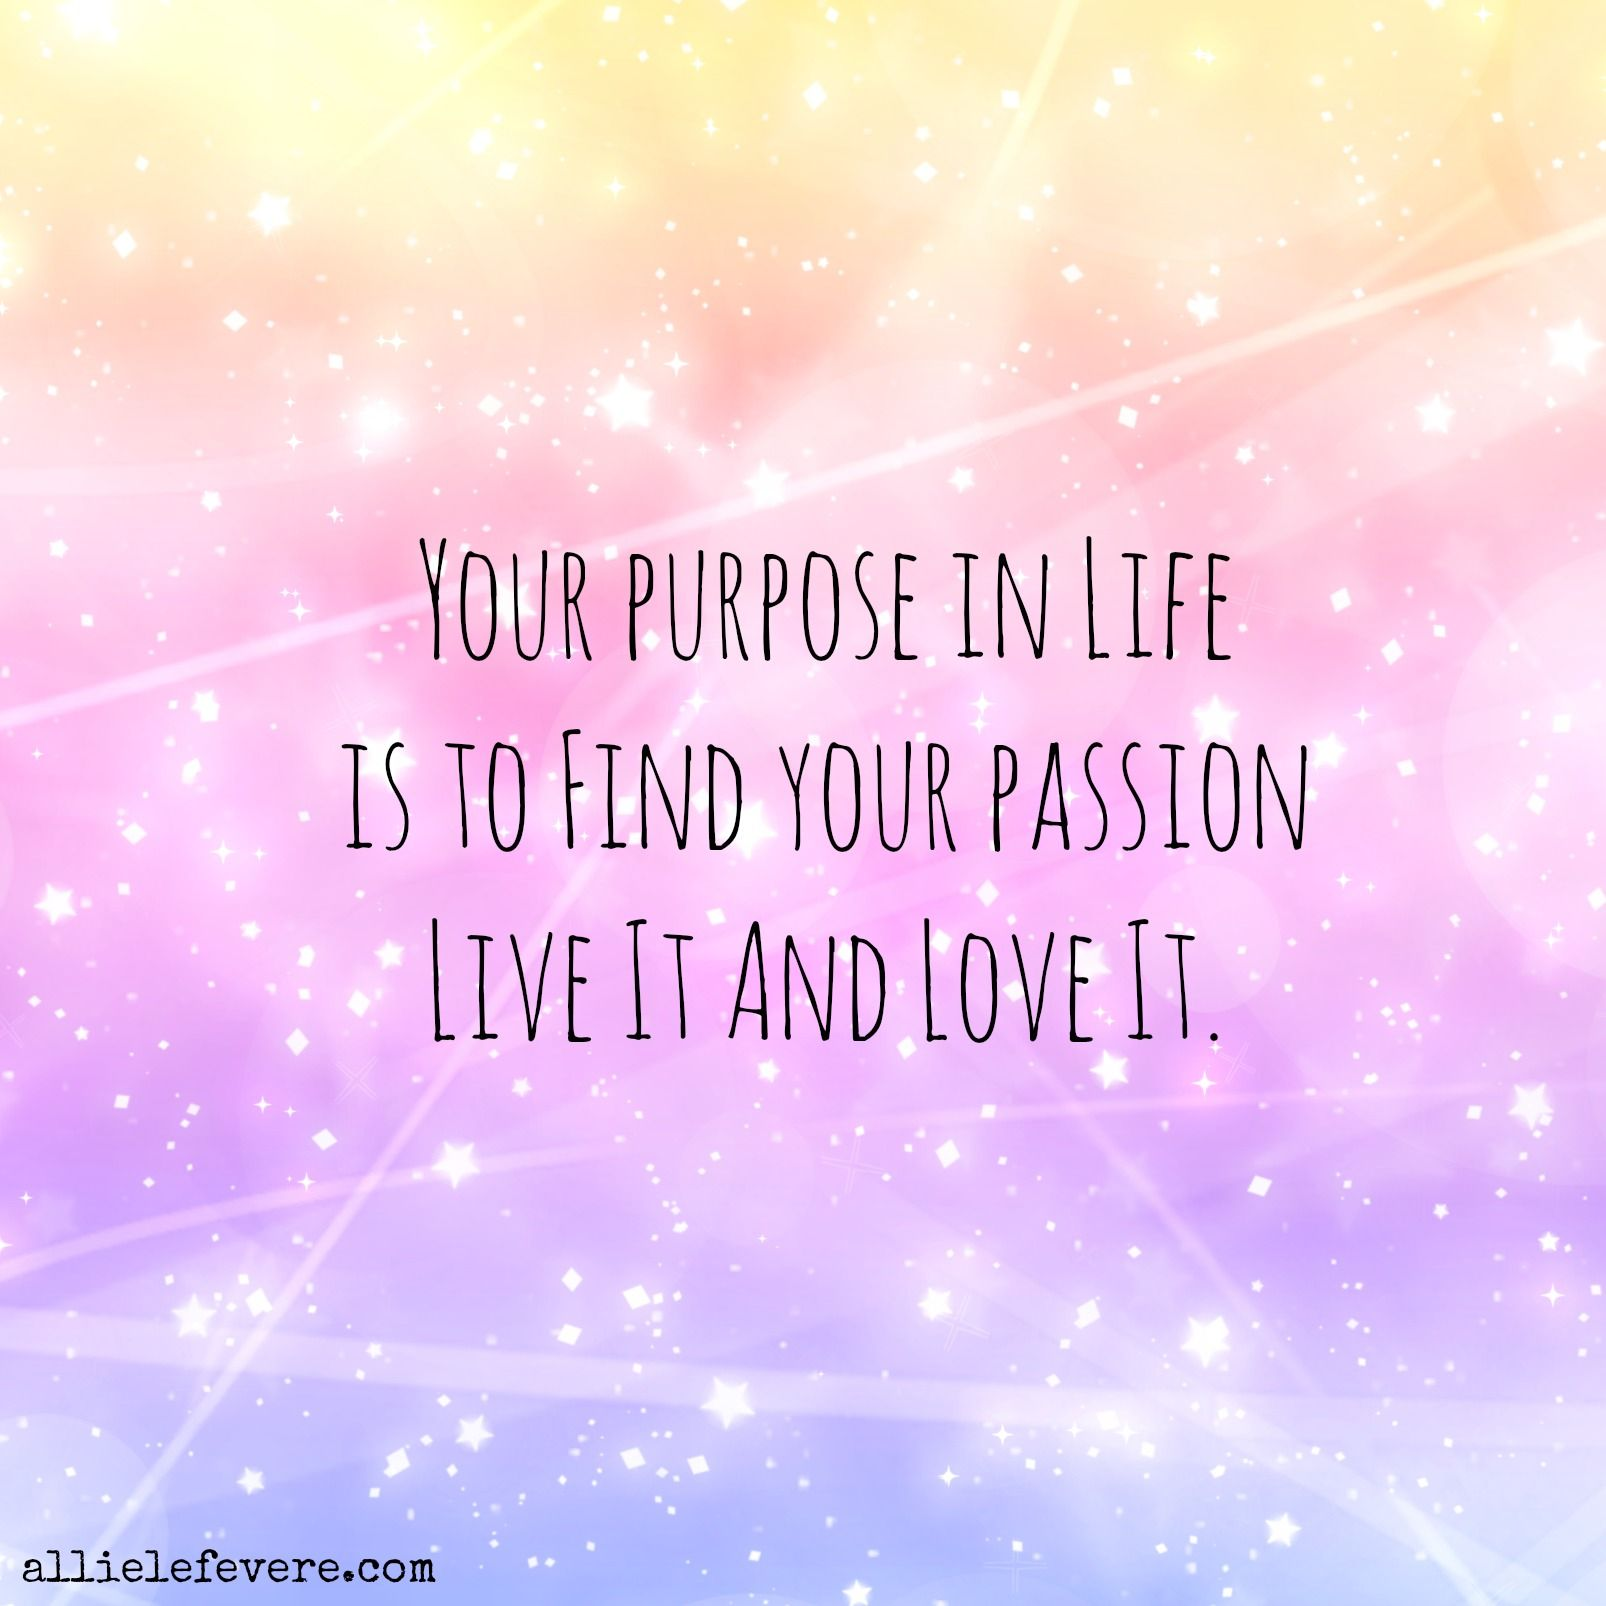 find your passion passion life love allielefevere find your passion passion life love